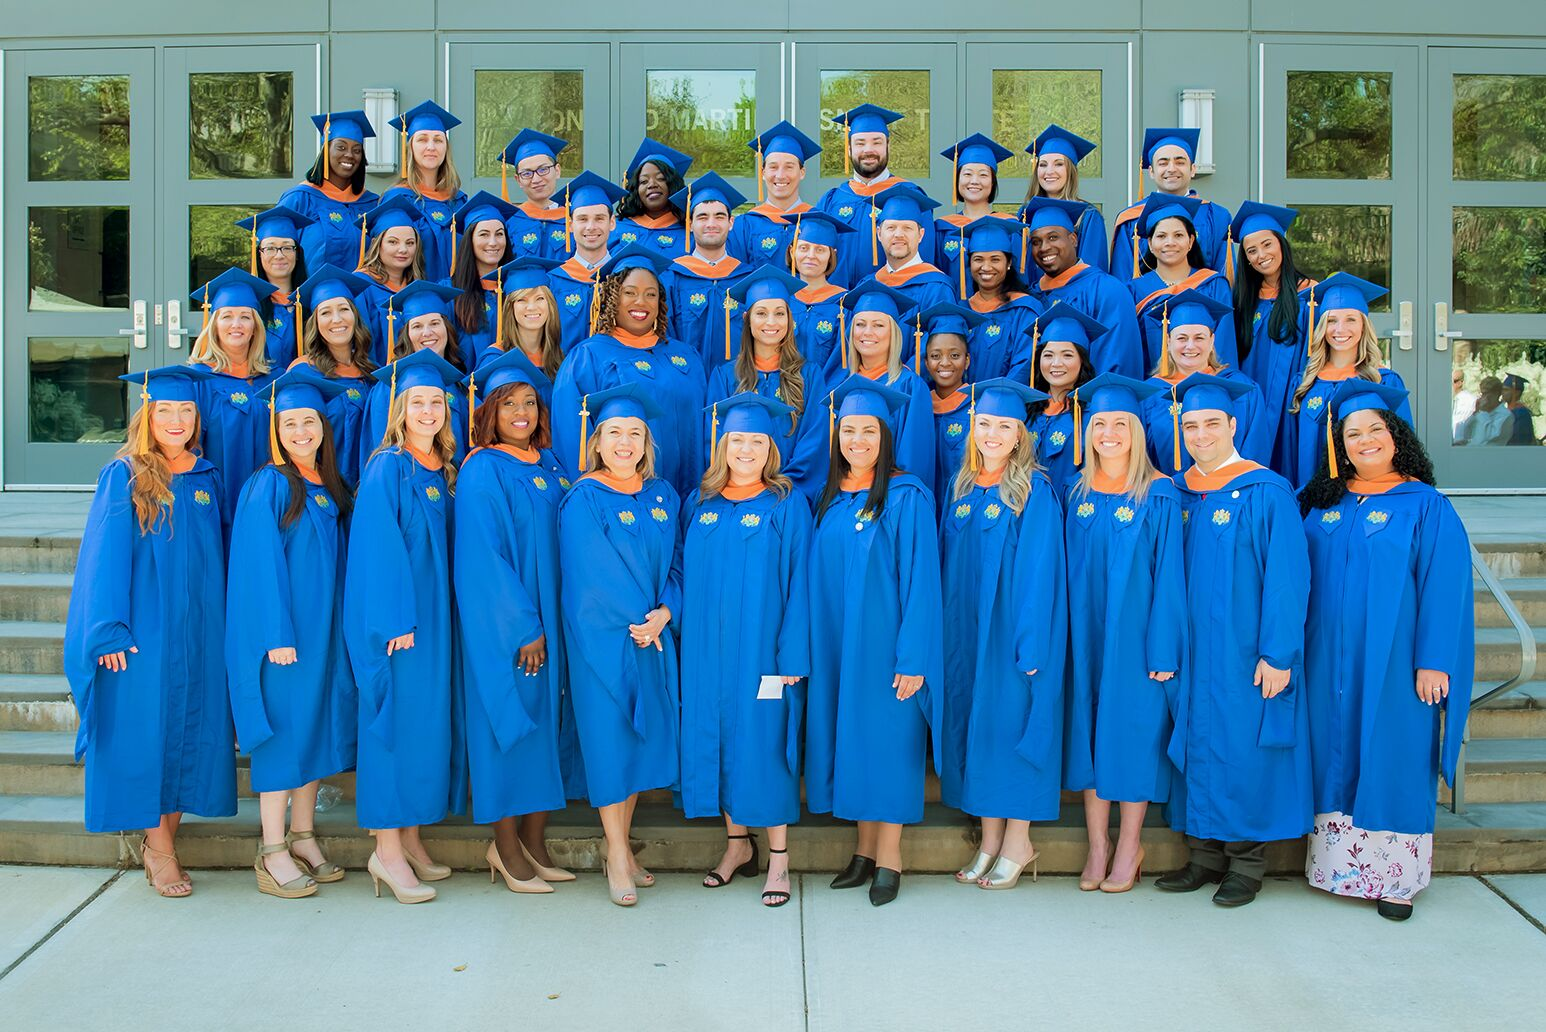 Convocation day for the 52 students who earned graduate degrees or advanced certificates from the Hofstra Northwell School of Graduate Nursing and Physician Assistant Studies. Photo credit Arthur Fredericks/Hofstra University.